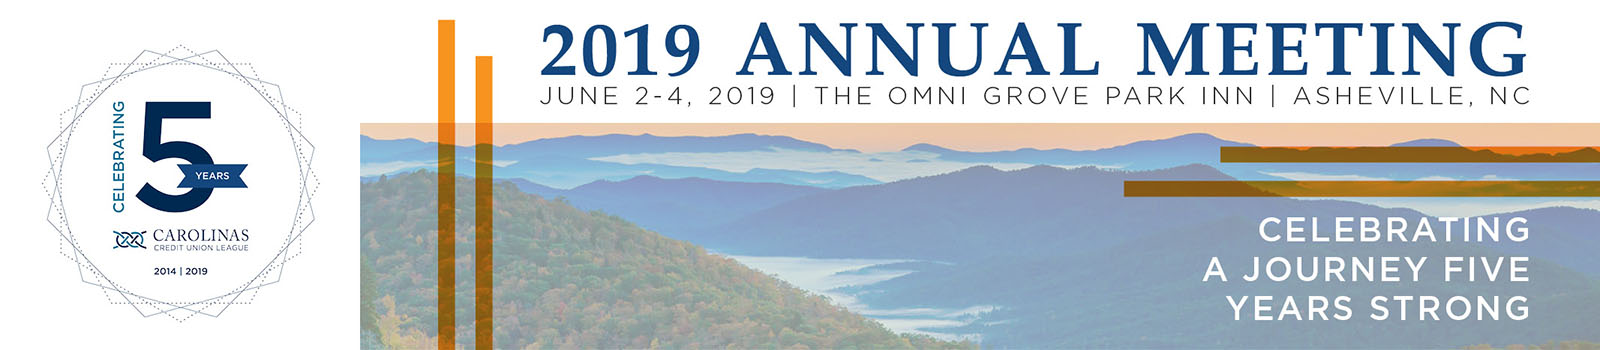 2019 Annual Meeting Header img